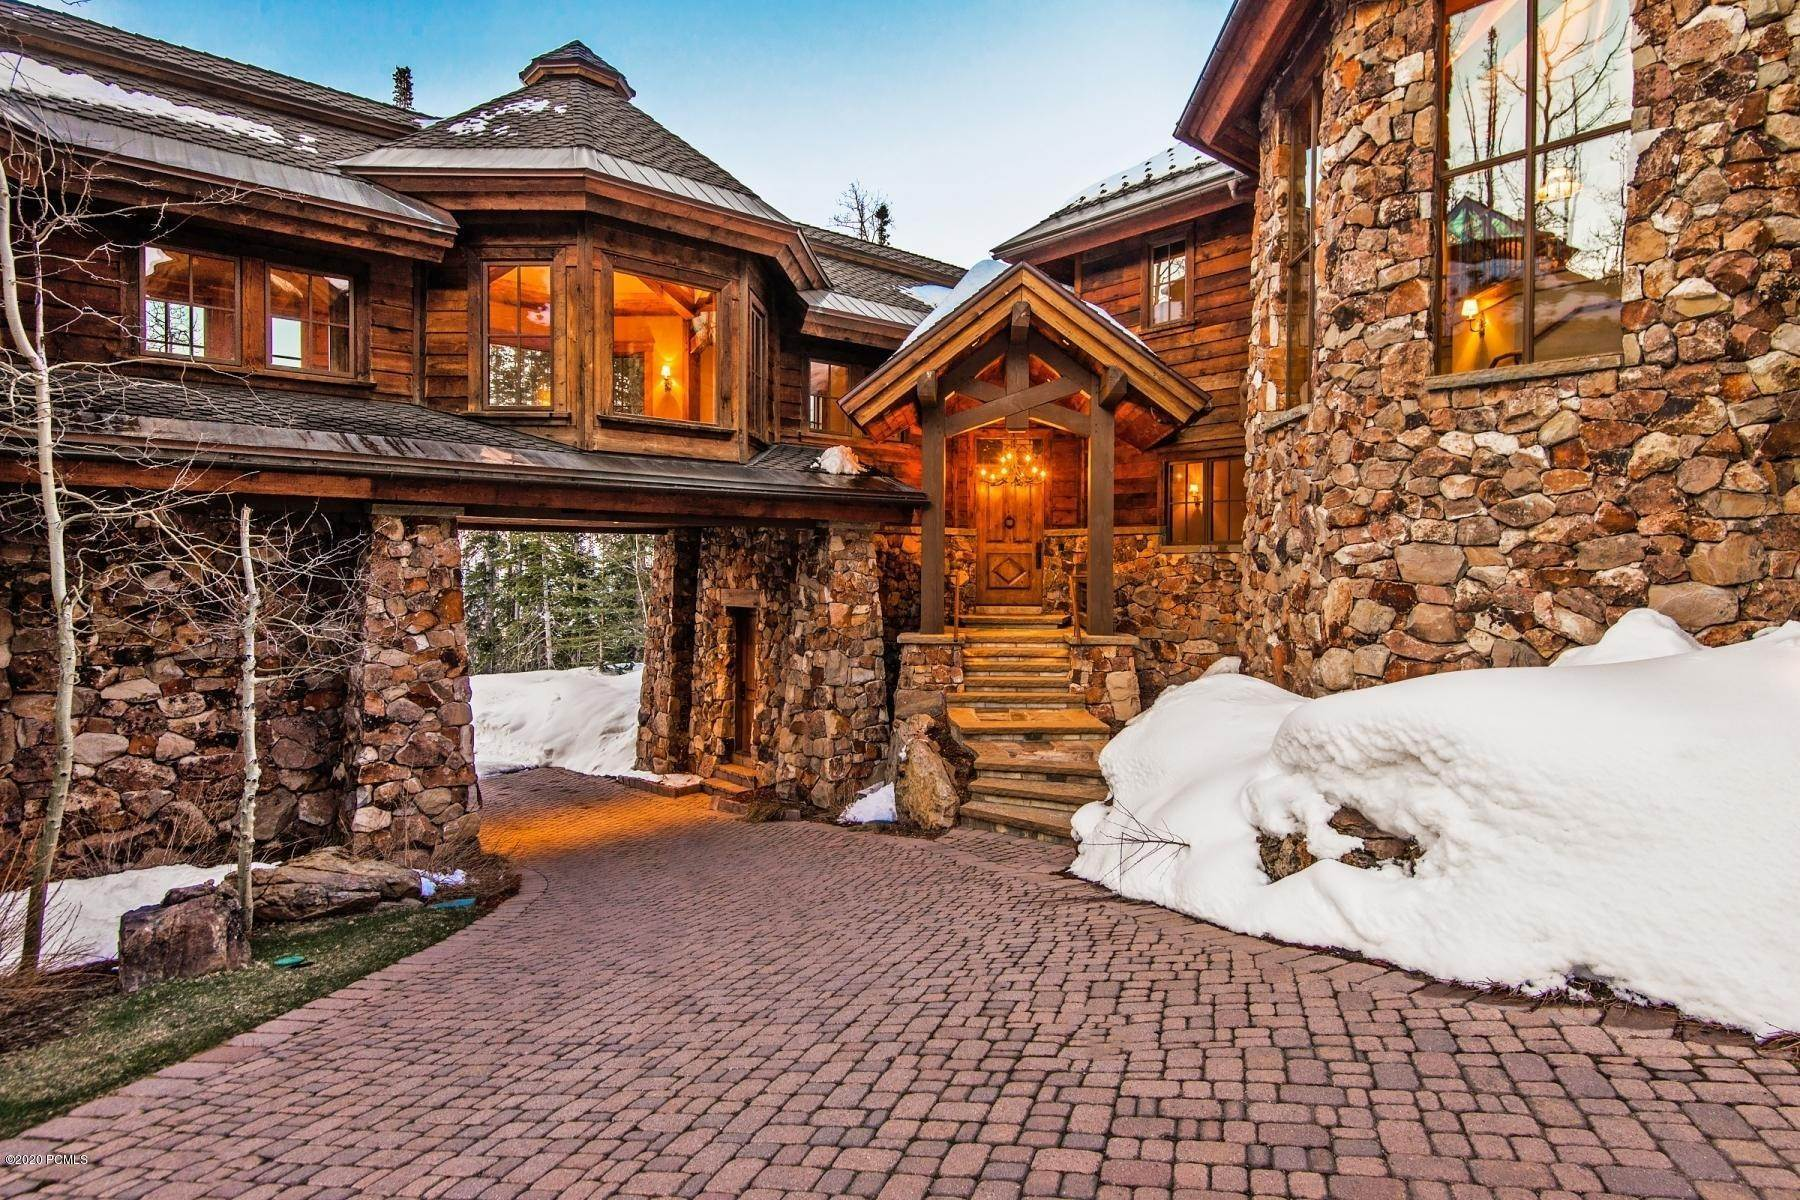 Single Family Homes for Sale at 91 White Pine Canyon Park City, Utah 84098 United States